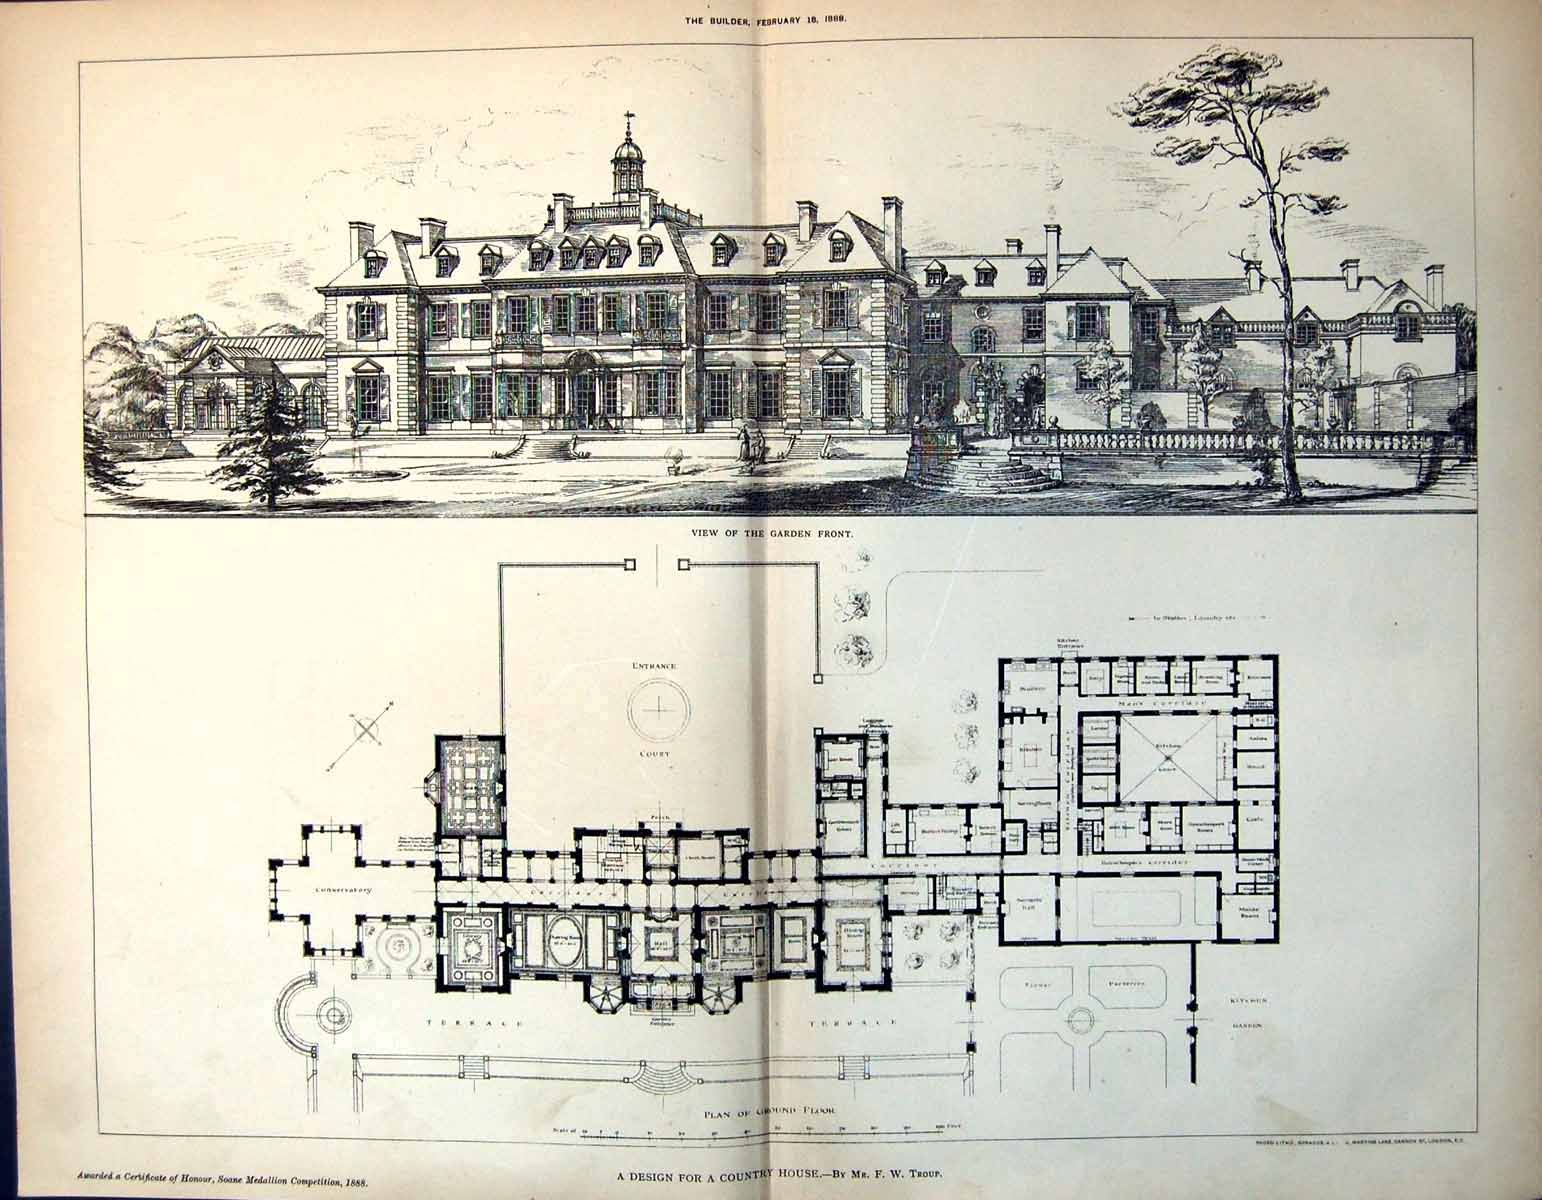 Building plans · a design for a country house view of the garden or terrace front elevation and